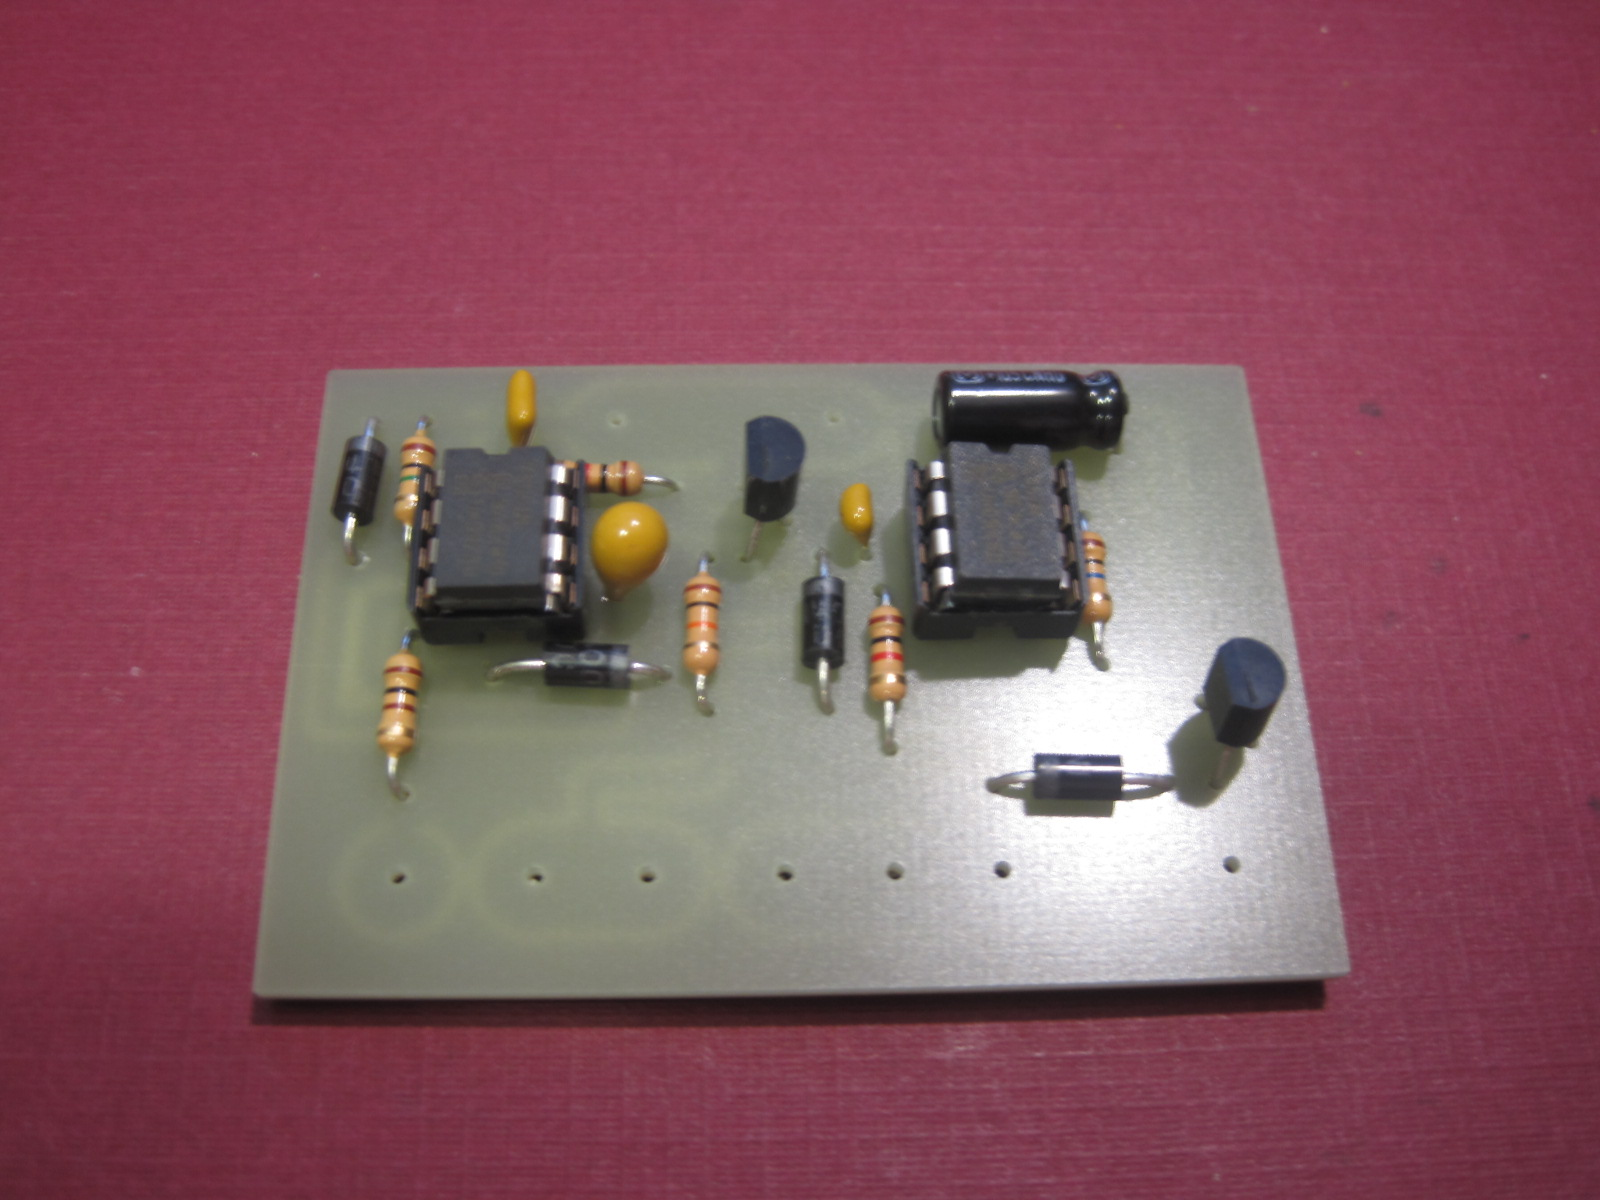 N1IR Electronics Website: The CQD Experience, The Ignition Switch